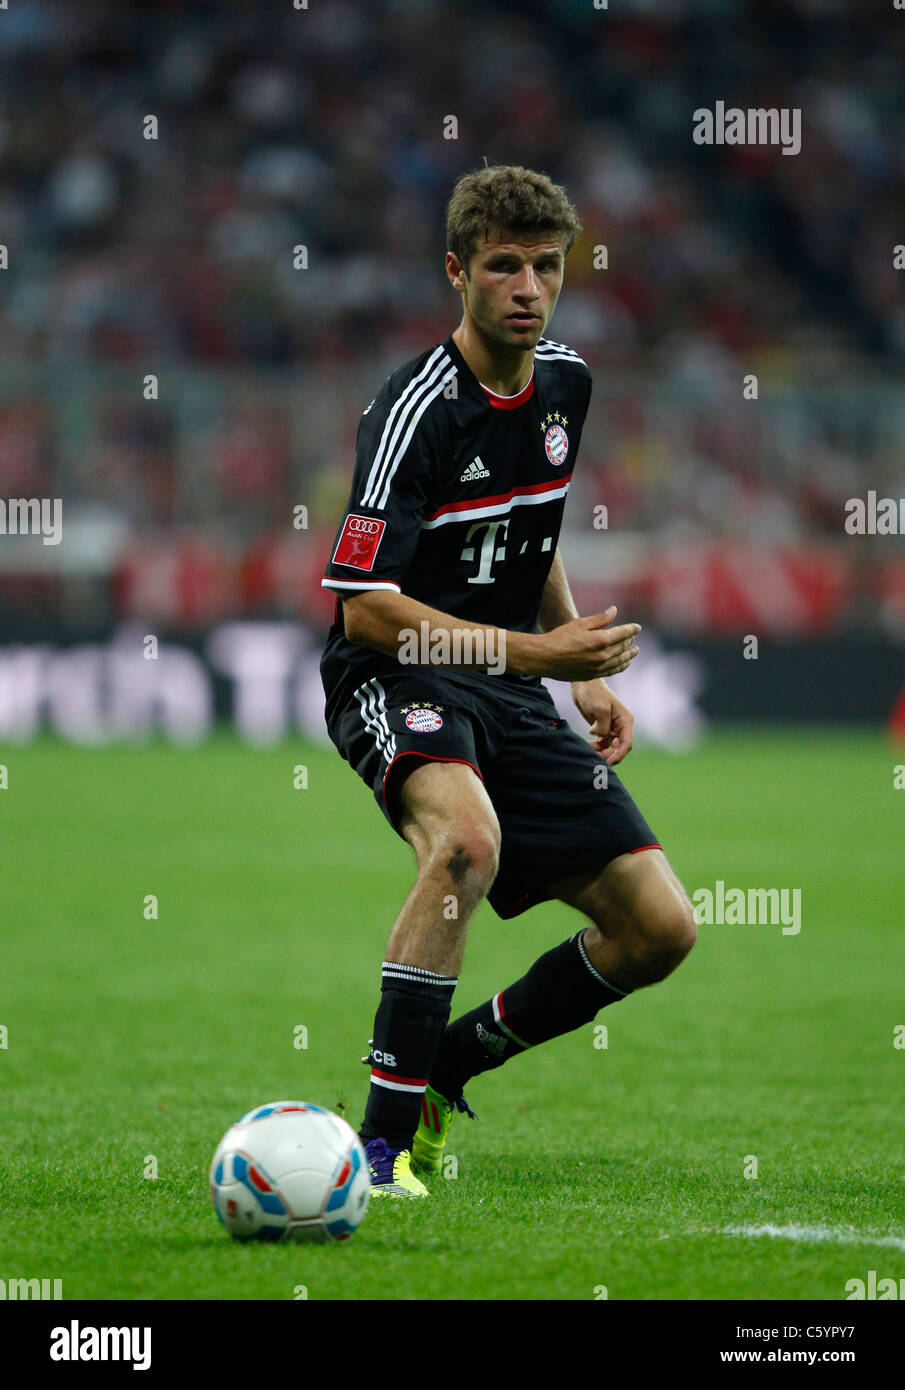 FC Bayern Munich player Thomas Mueller in action. - Stock Image